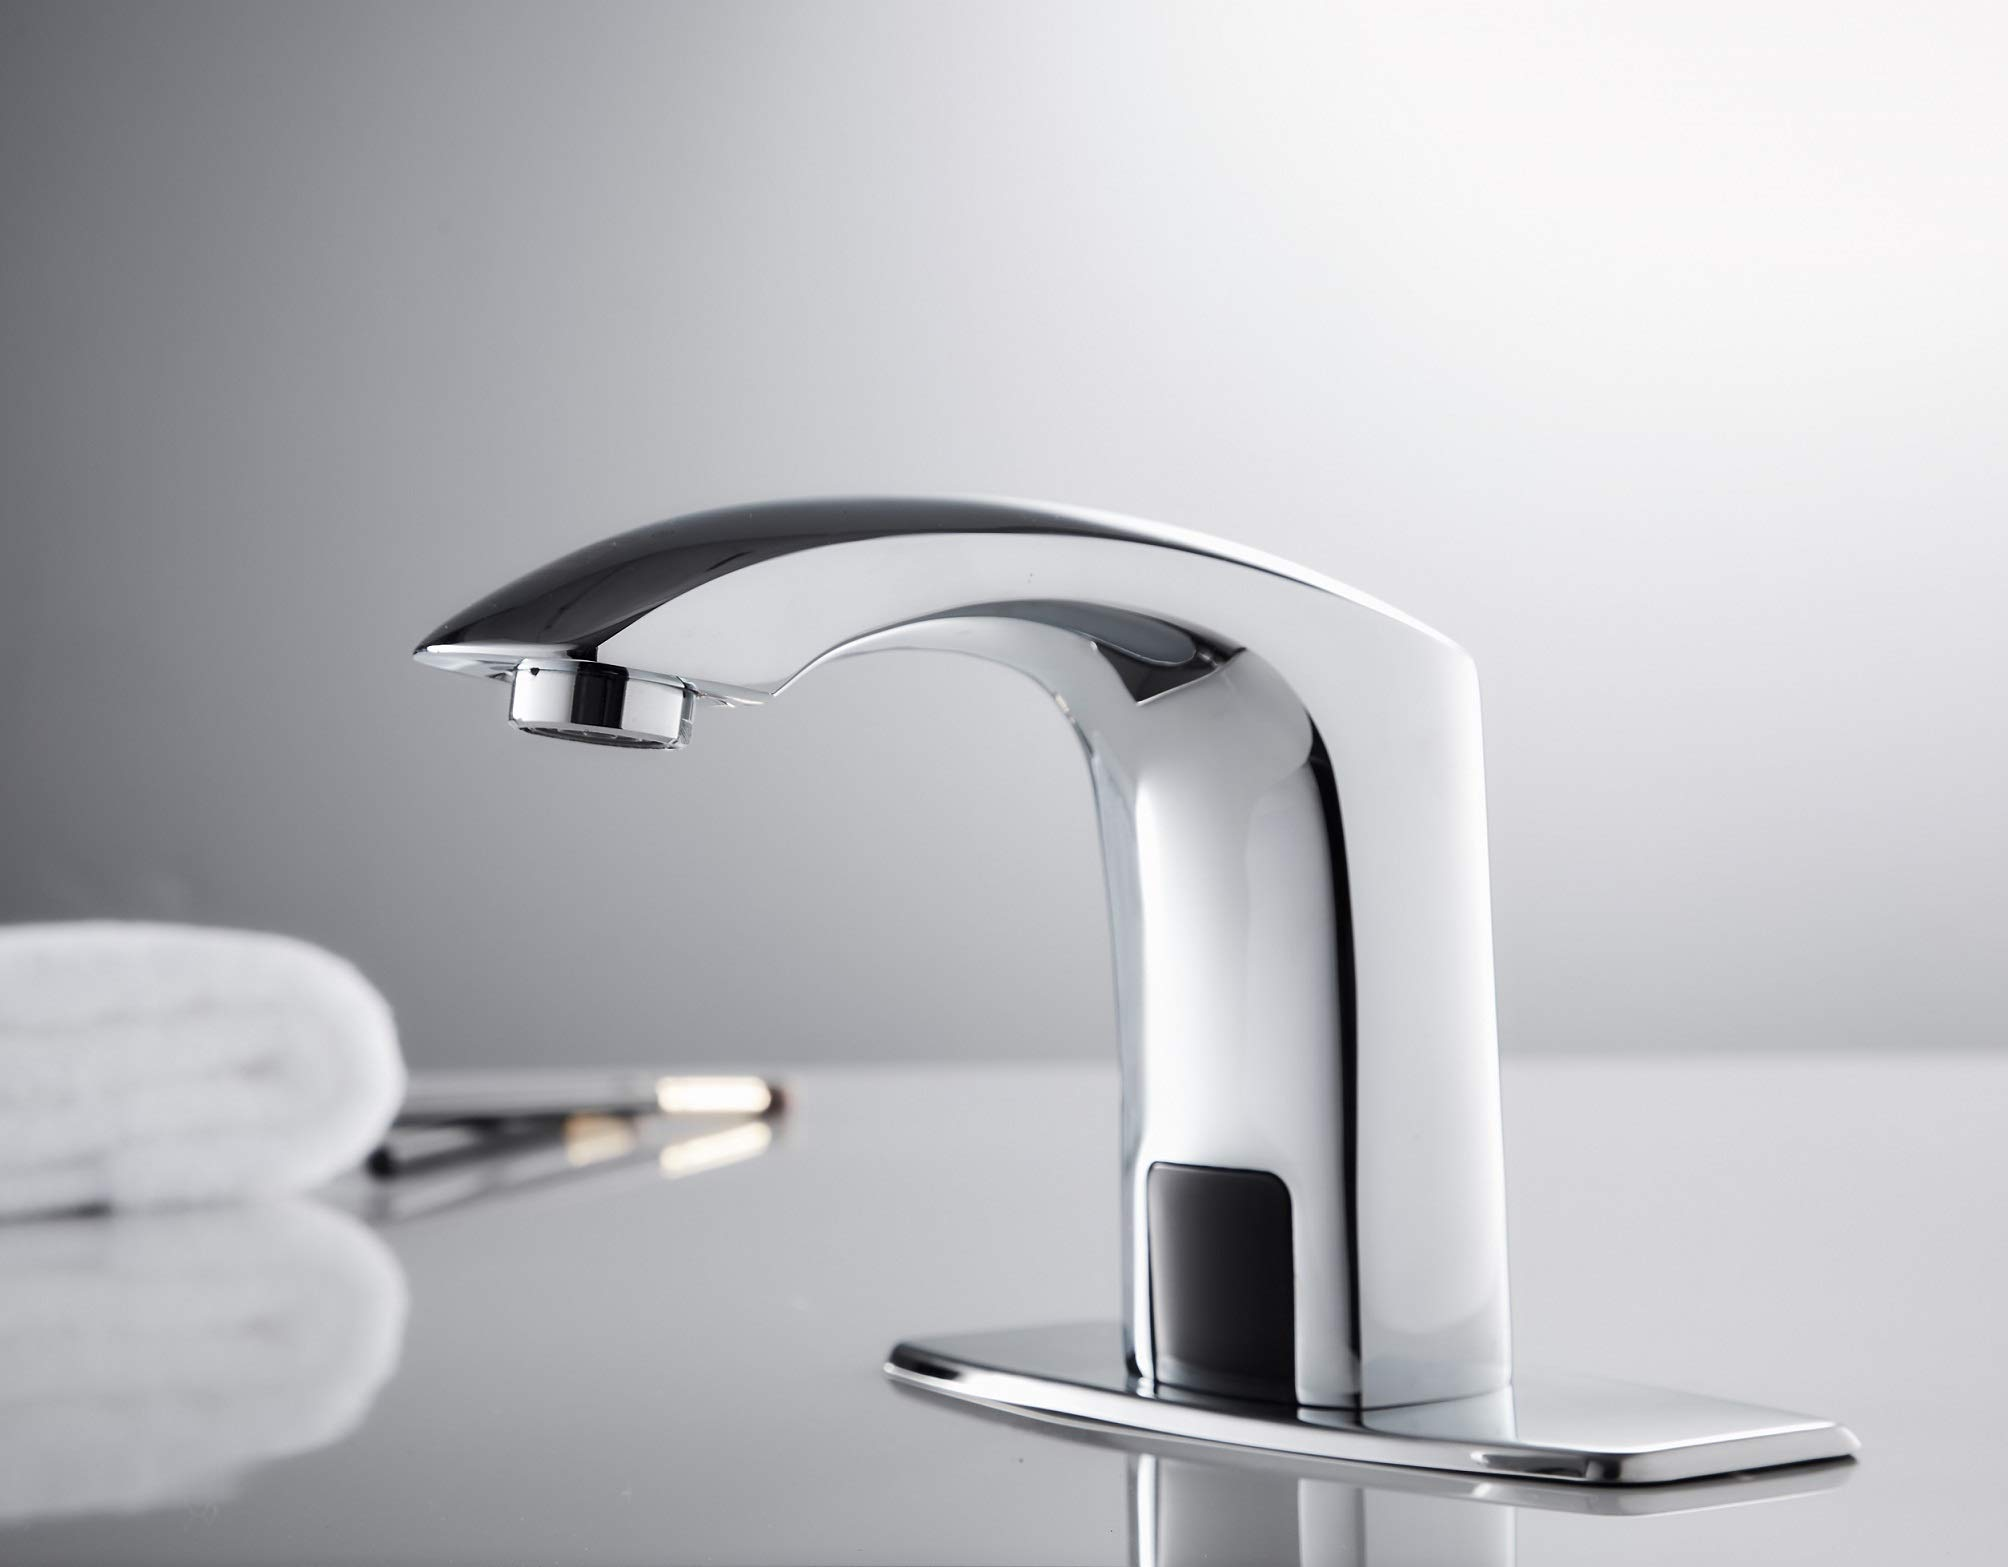 HHOOMMEE Automatic Touchless Sensor Faucet Motion Activated Bathroom Hands Free Tap (Chrome) by HHOOMMEE